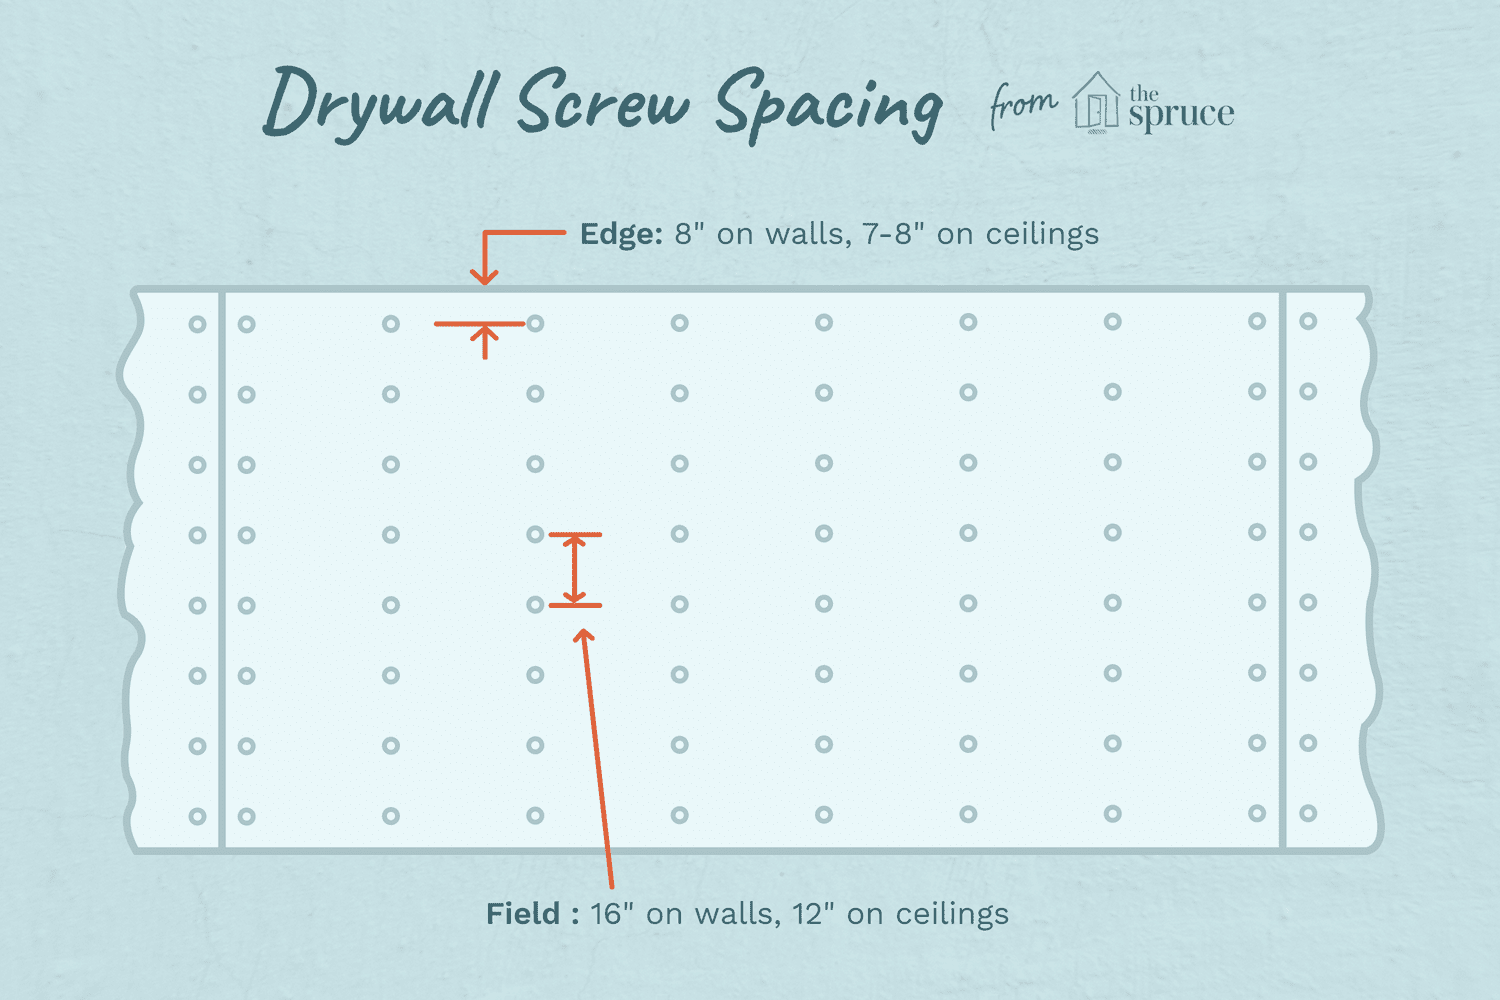 Guide To Drywall Screw Spacing And Pattern